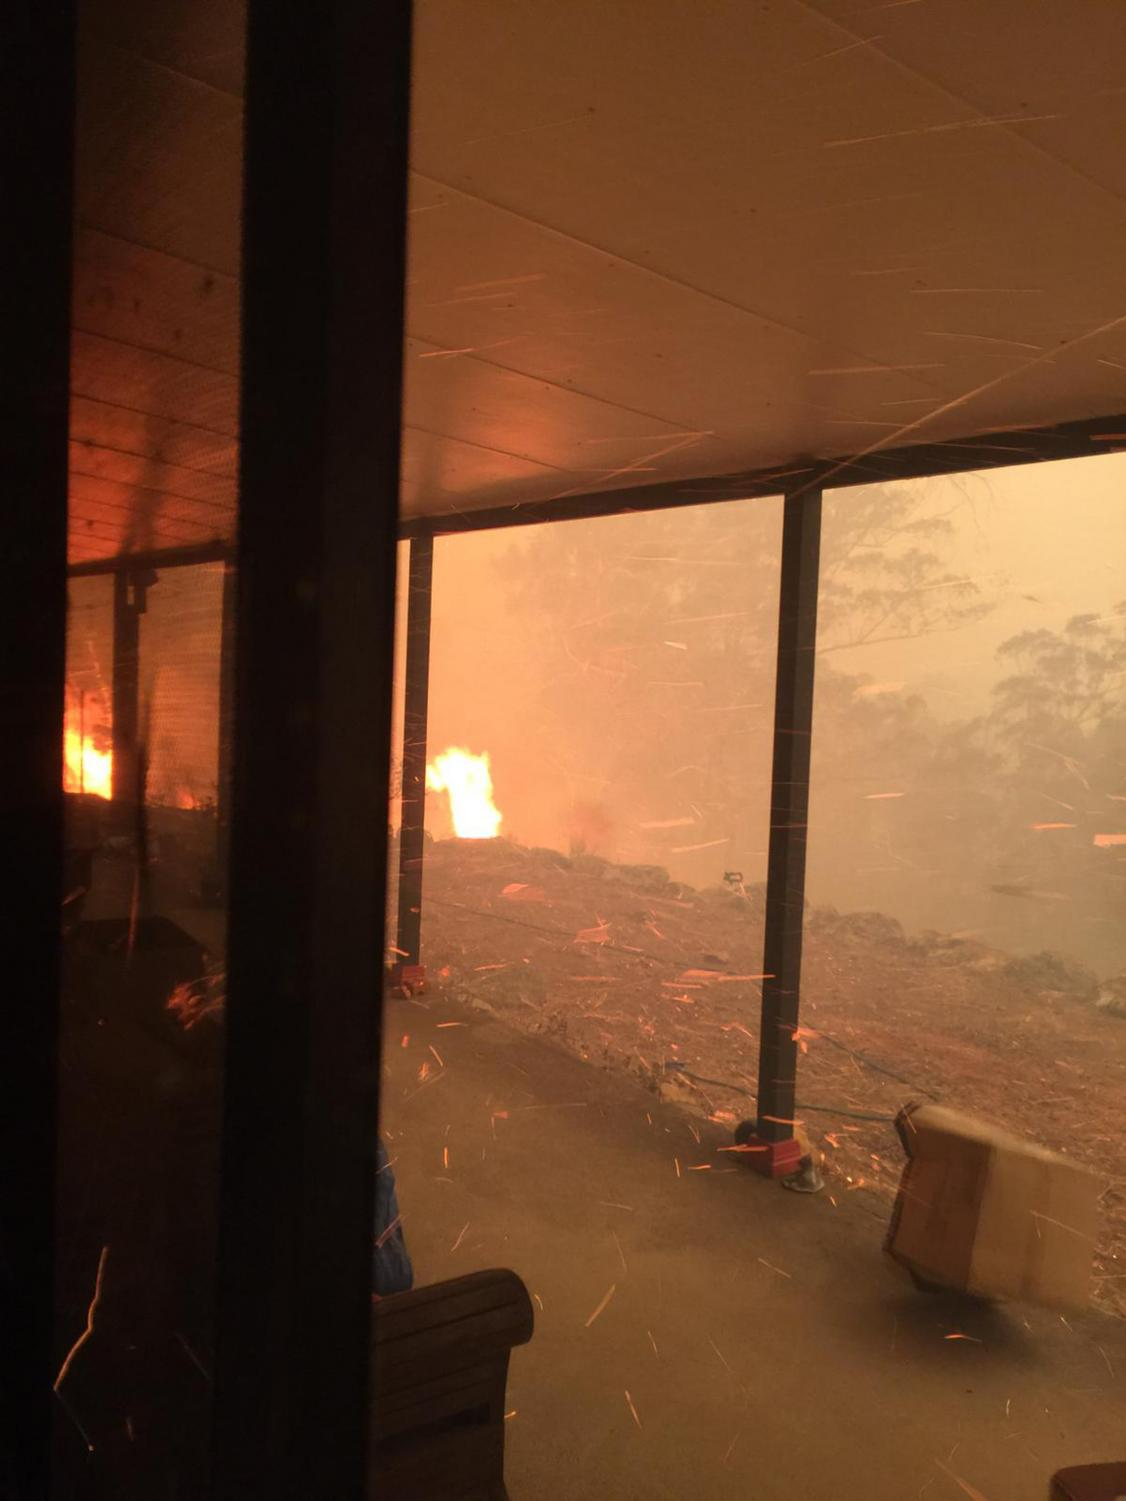 Australia+Wildfires+Survival%0AImage+ID+%3A+20007414138561%0AIn+this+Dec.+21%2C+2019%2C+photo+provided+by+Helena+Wong%2C+fire+approaches+her+home+as+she+shelters+inside.+Wong+and+her+partner+Justin+Kam+built+their+home+with+quarter-inch+thick+reinforced+glass%2C+steel+framing+and+rock+surrounds+to+protect+them+from+Australia%27s+notorious+wildfires.+But+as+they+stayed+home+with+their+son+and+battled+flames+that+soared+as+high+as+a+15-story+building%2C+they+realized+they+were+in+mortal+danger.+%28Helena+Wong+via+AP%29